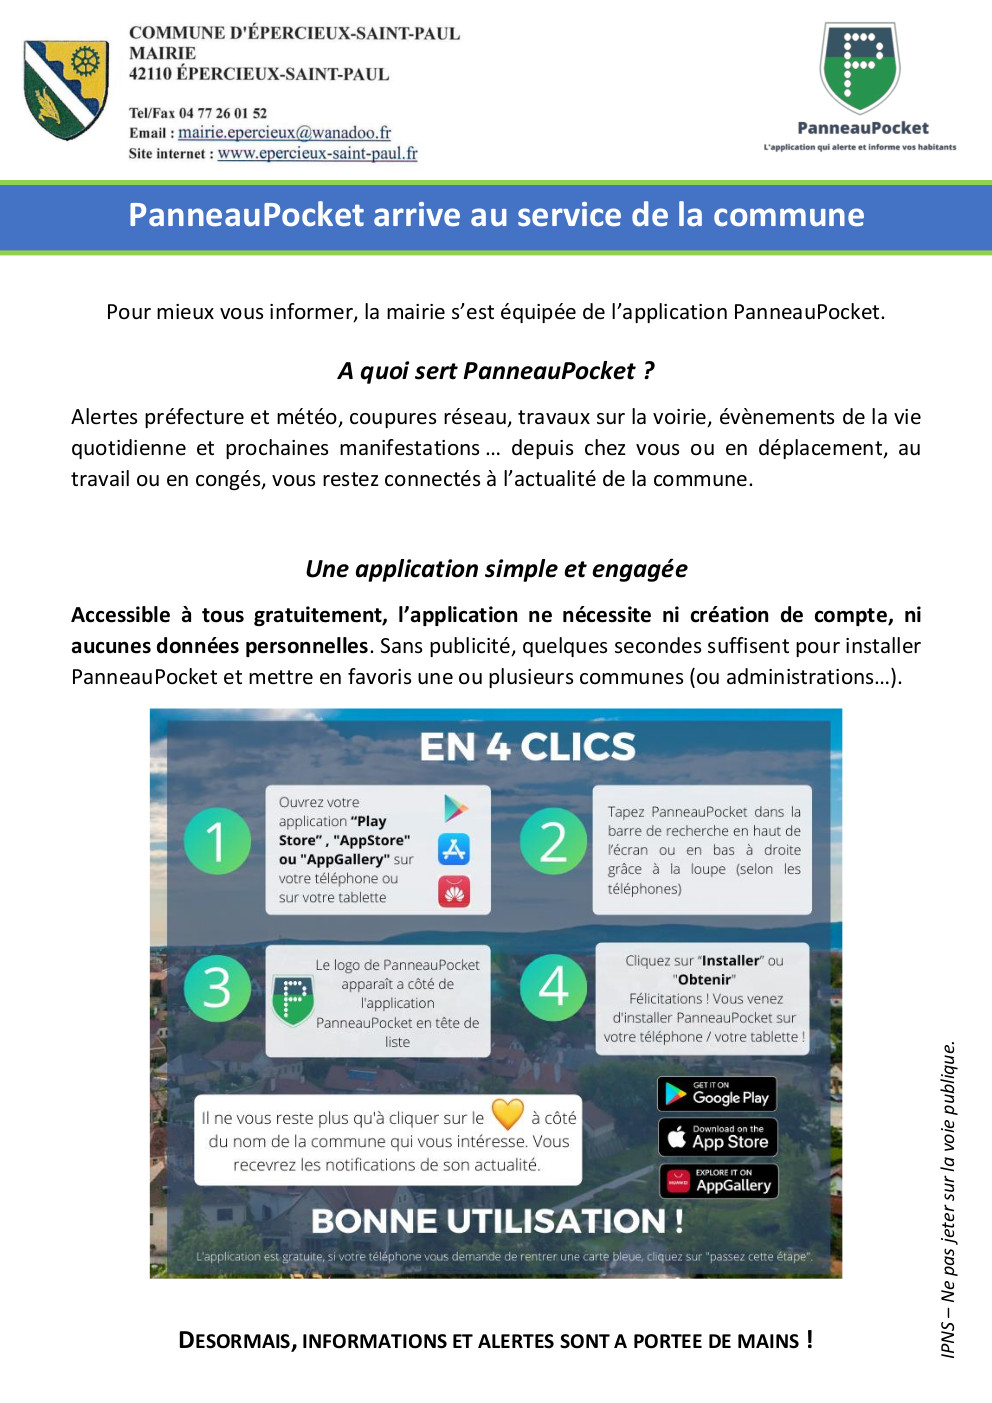 Epercieux Tract panneaupocket 1